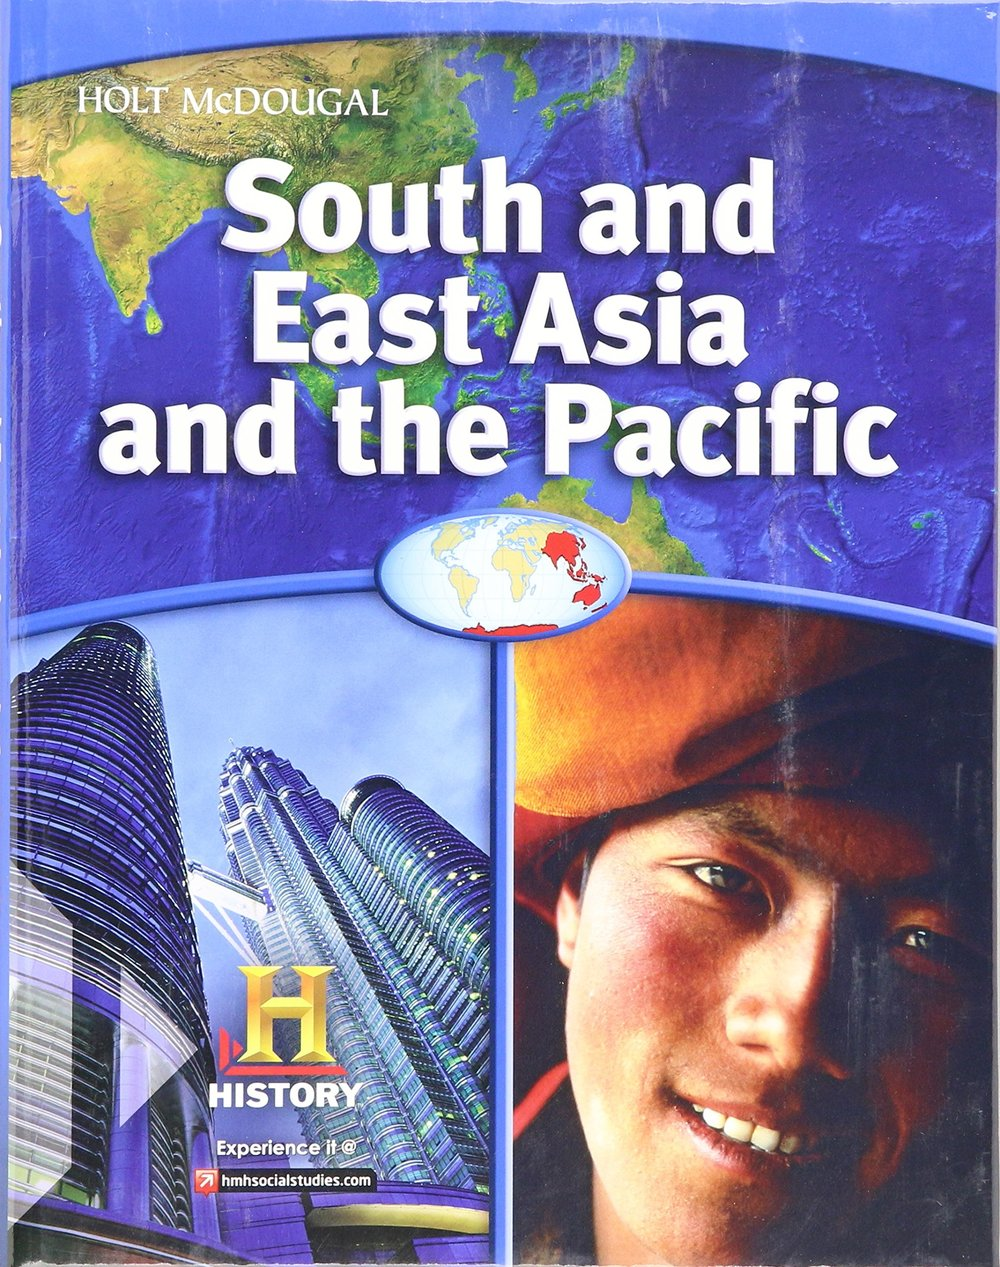 Books Holt McDougal 01 South and East Asian and the Pacific.jpg